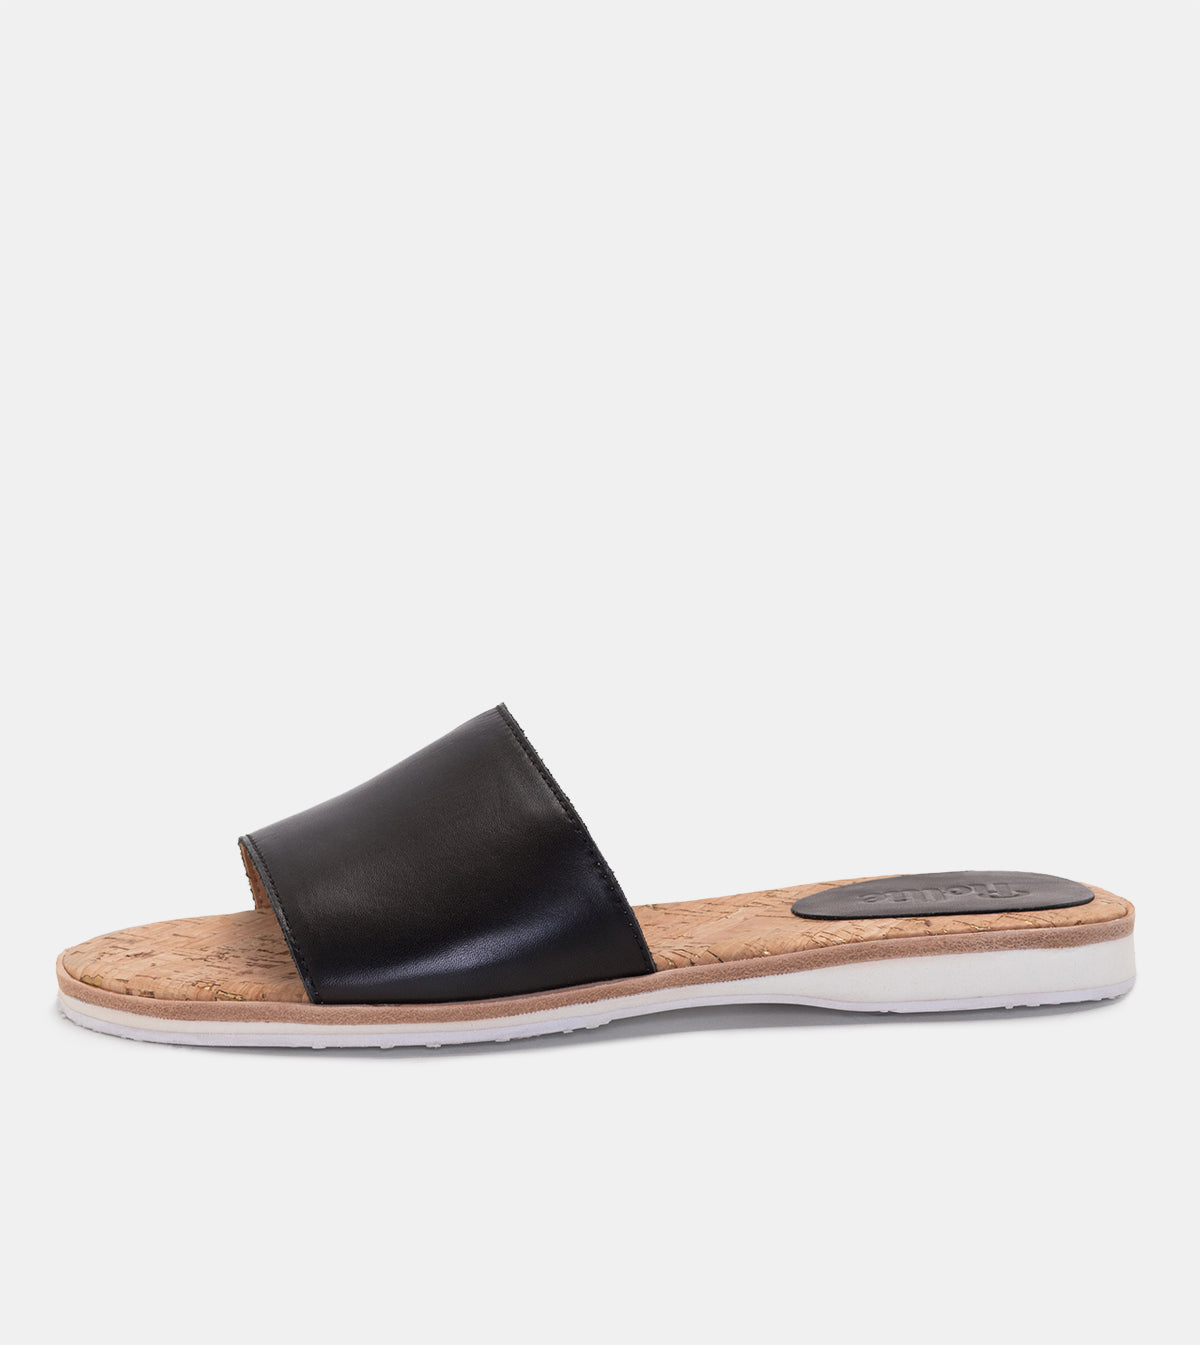 Sandal Slide Black Leather